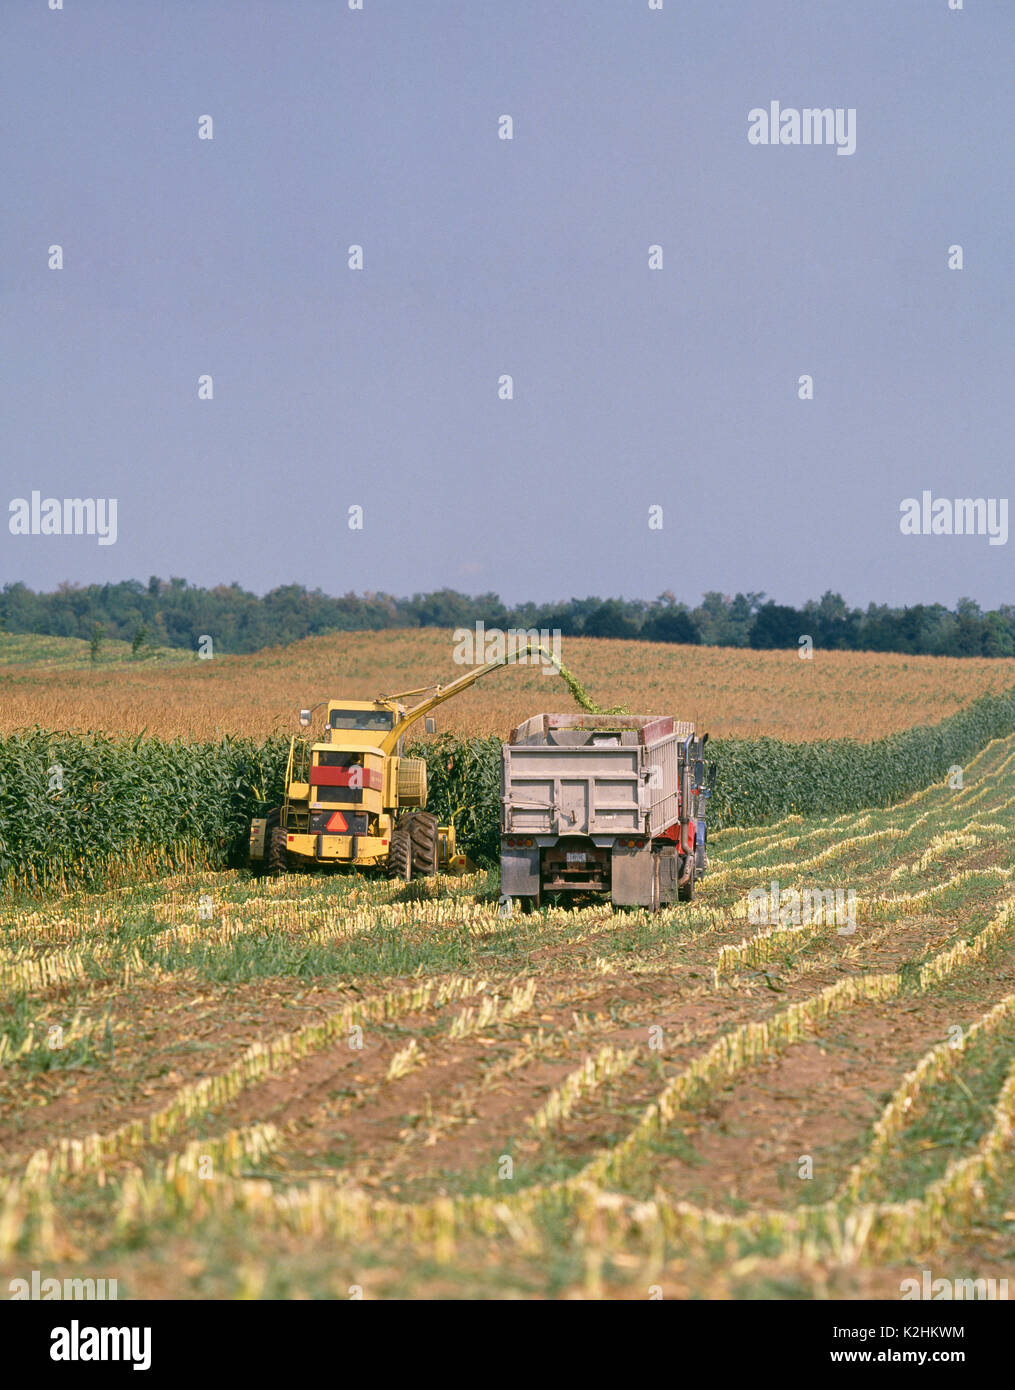 CORN SILAGE HARVEST USING 2115 NEW HOLLAND SELF-PROPELLED CHOPPER WITH GROW HEAD, BLOWING IN TO TRACTOR TRAILERS WITH DUMP TRAILERS ALONGSIDE CHOPPER - Stock Image